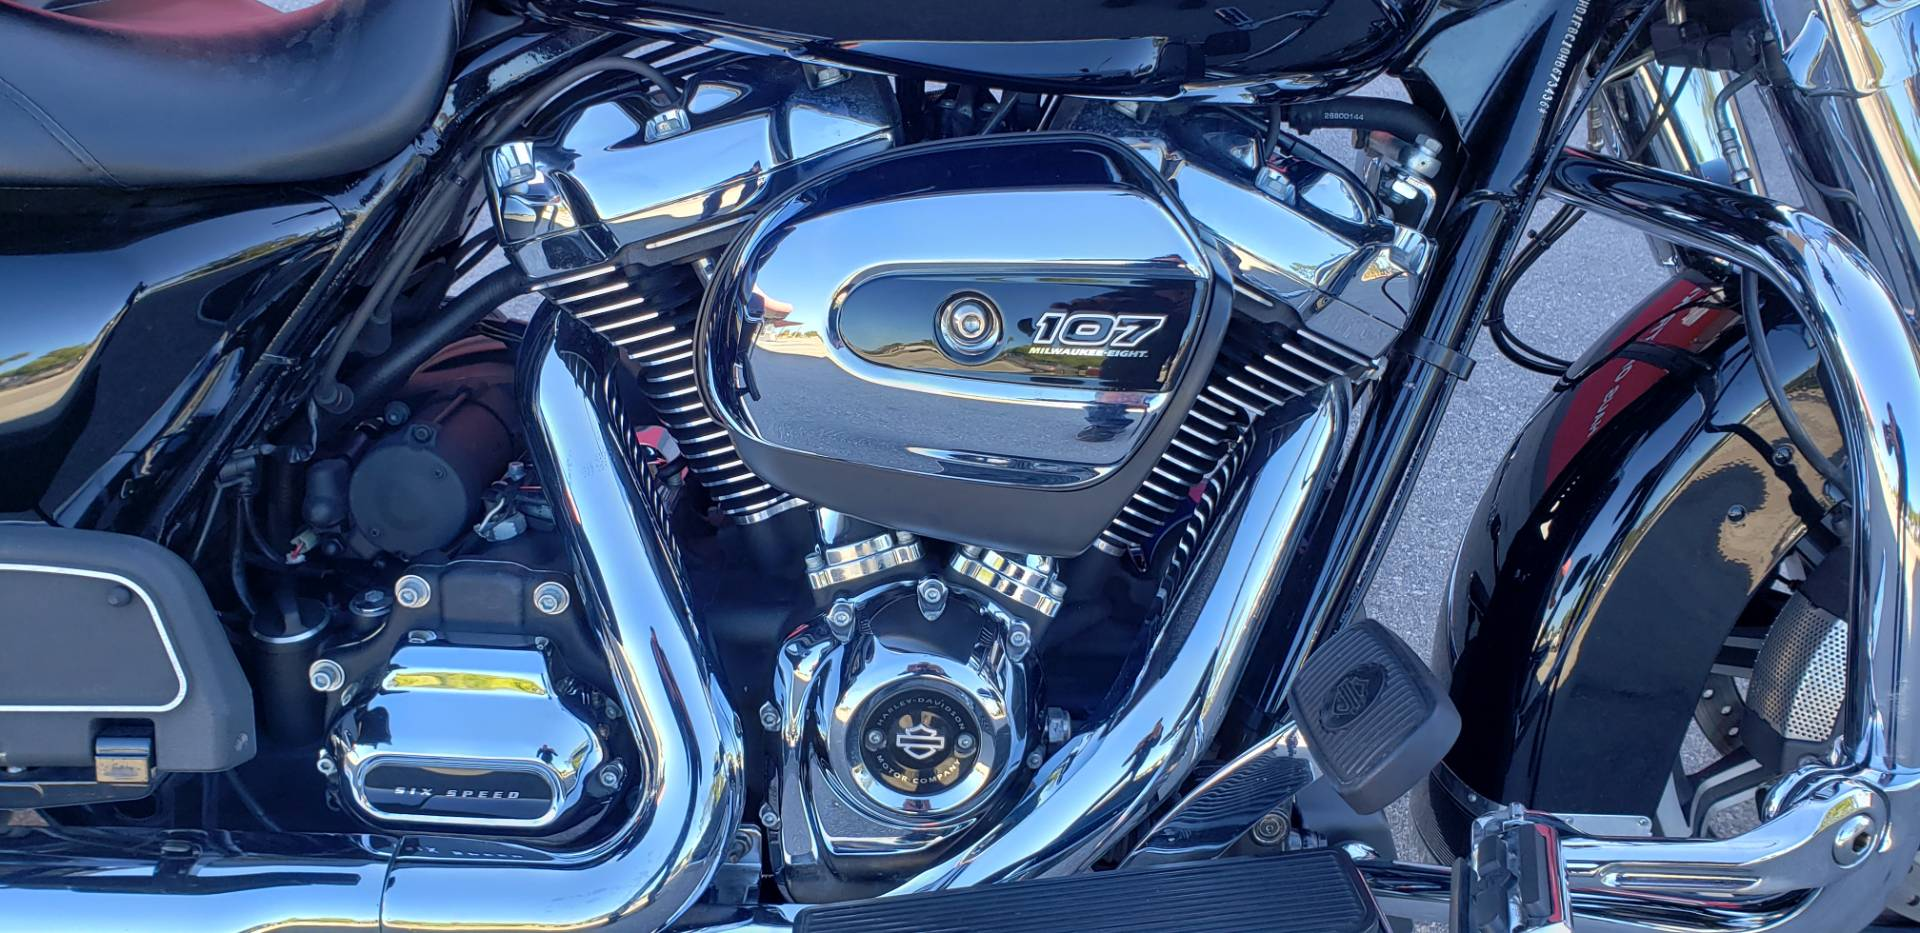 2017 Harley-Davidson Road King® in Fort Myers, Florida - Photo 8